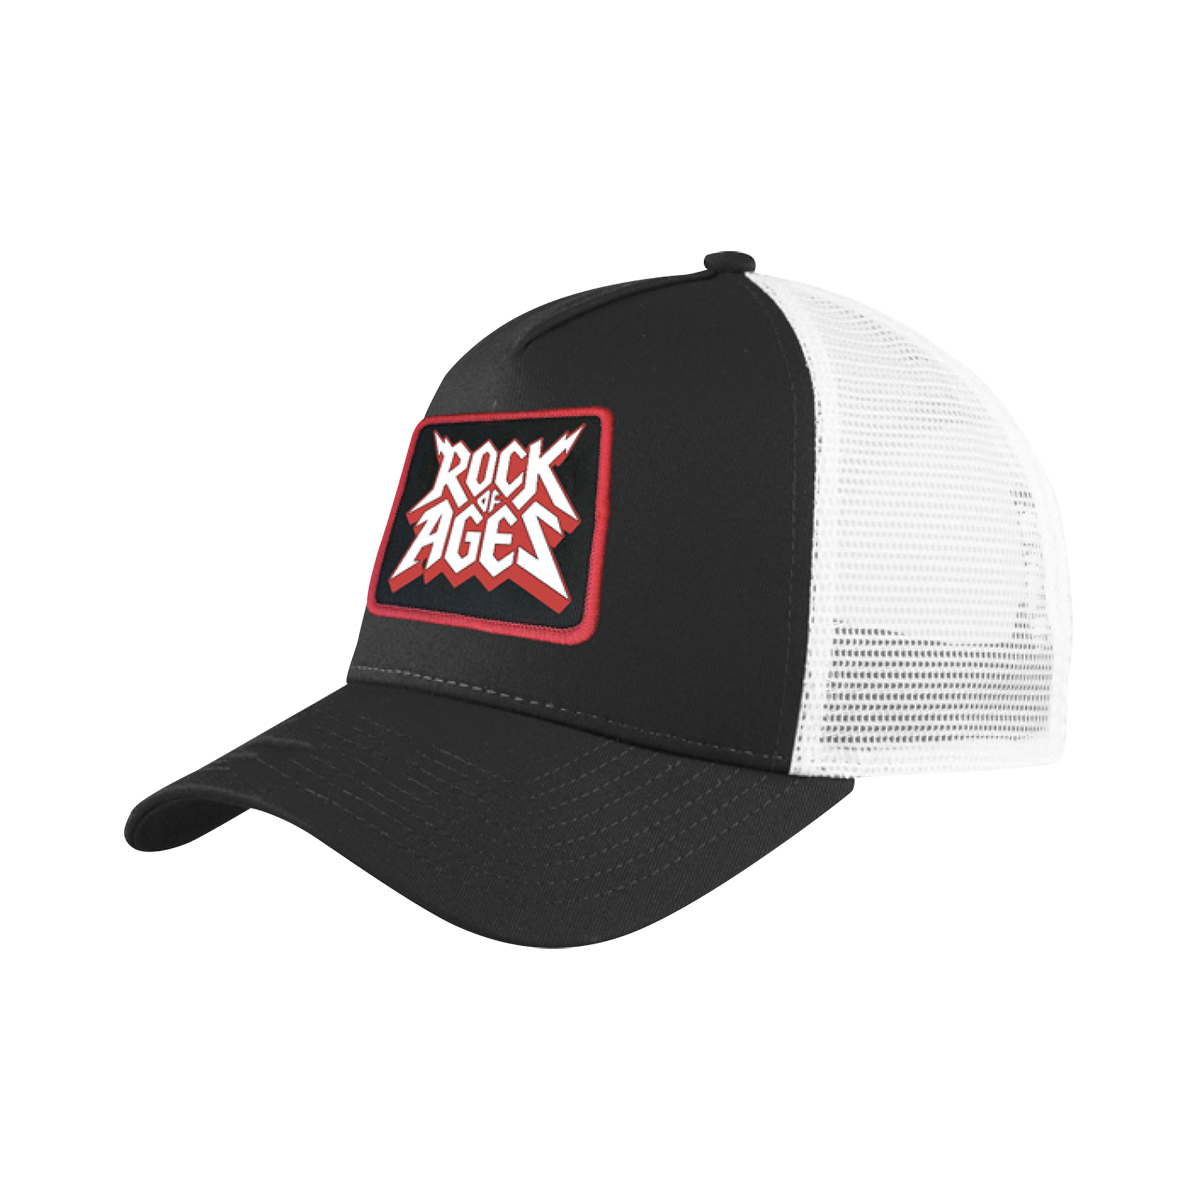 Rock of Ages Trucker Hat